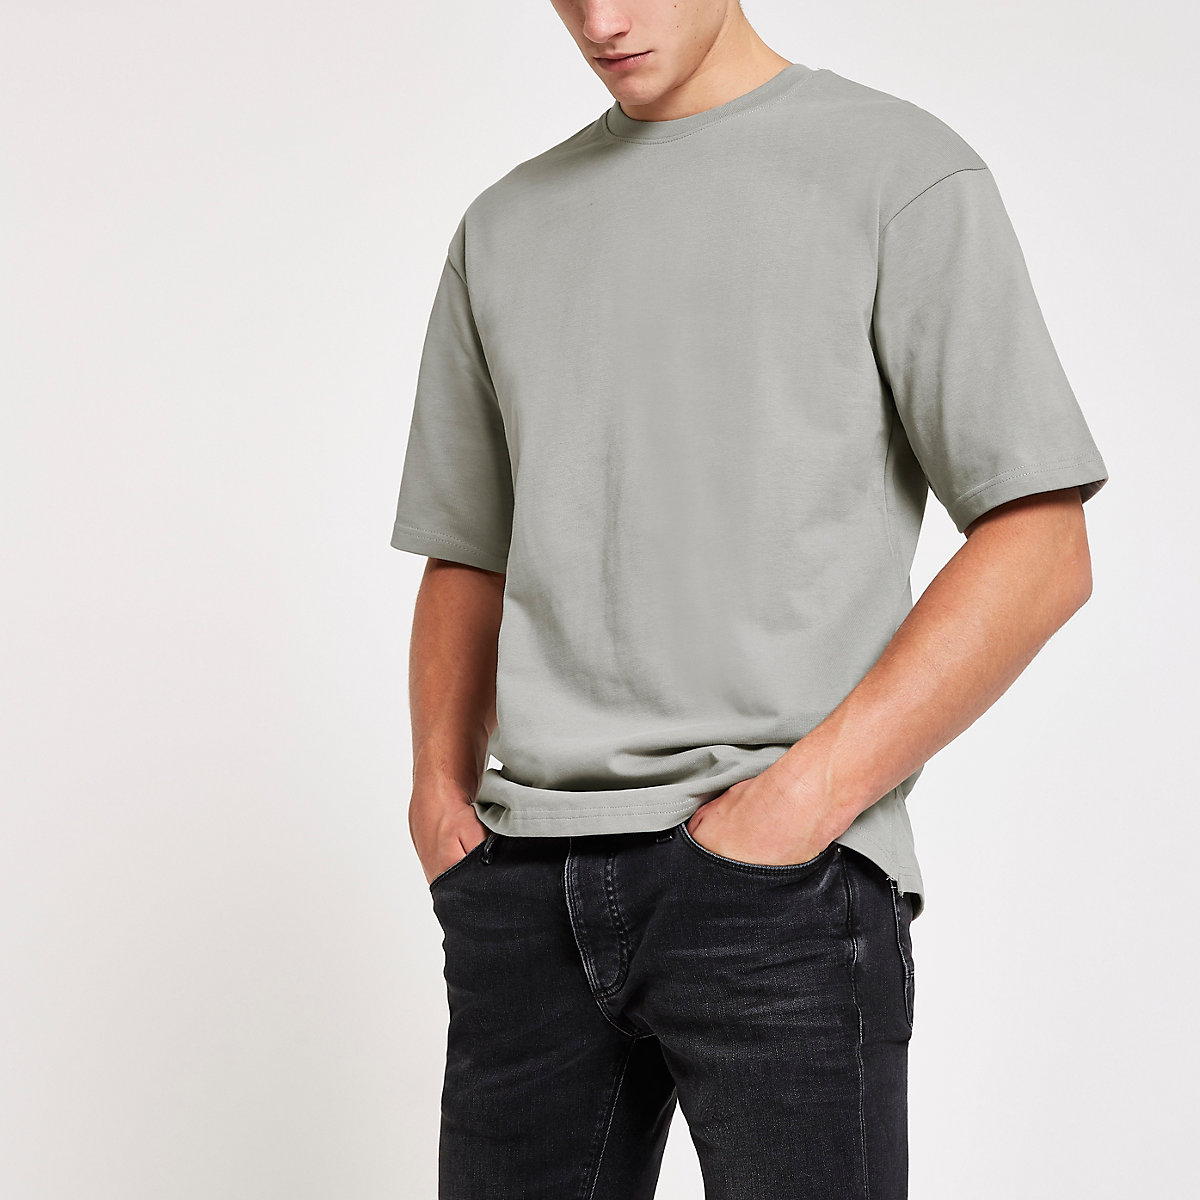 Only & Sons grey short sleeve sweatshirt